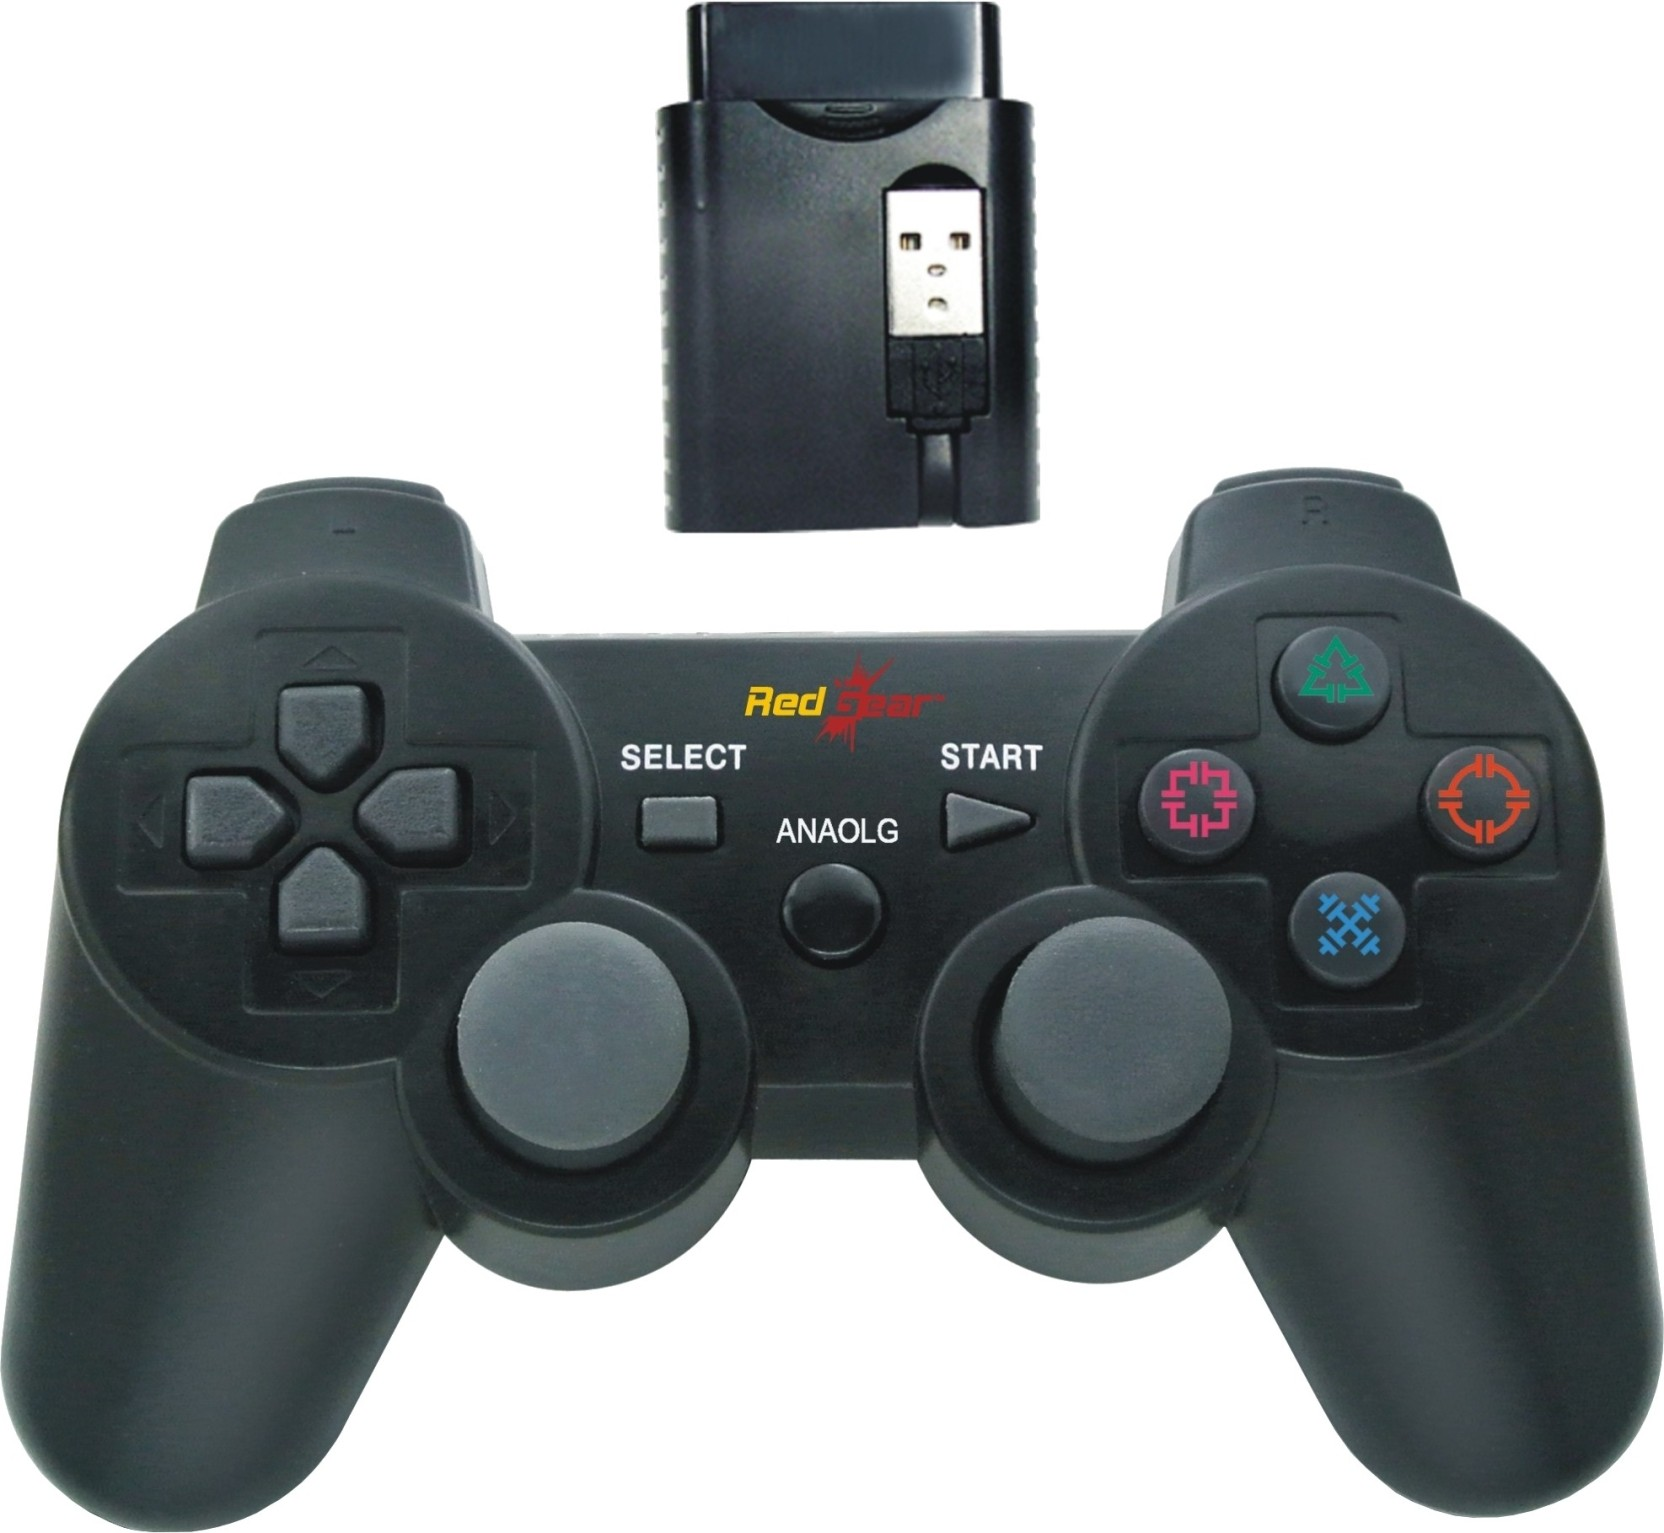 Ps2 controller compatible with ps3 : Core power yoga west loop